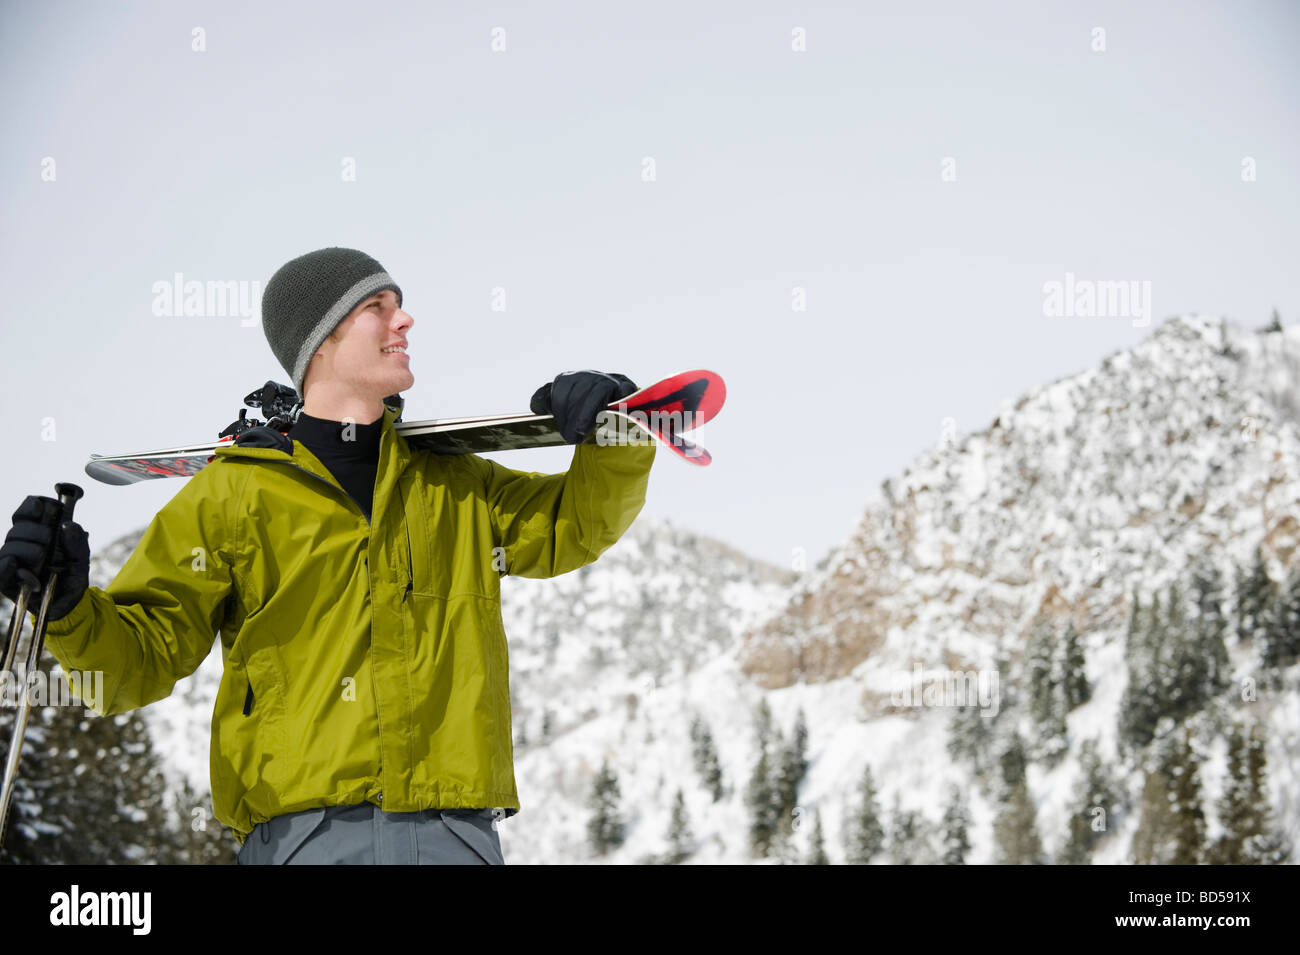 A downhill skier carrying skis - Stock Image